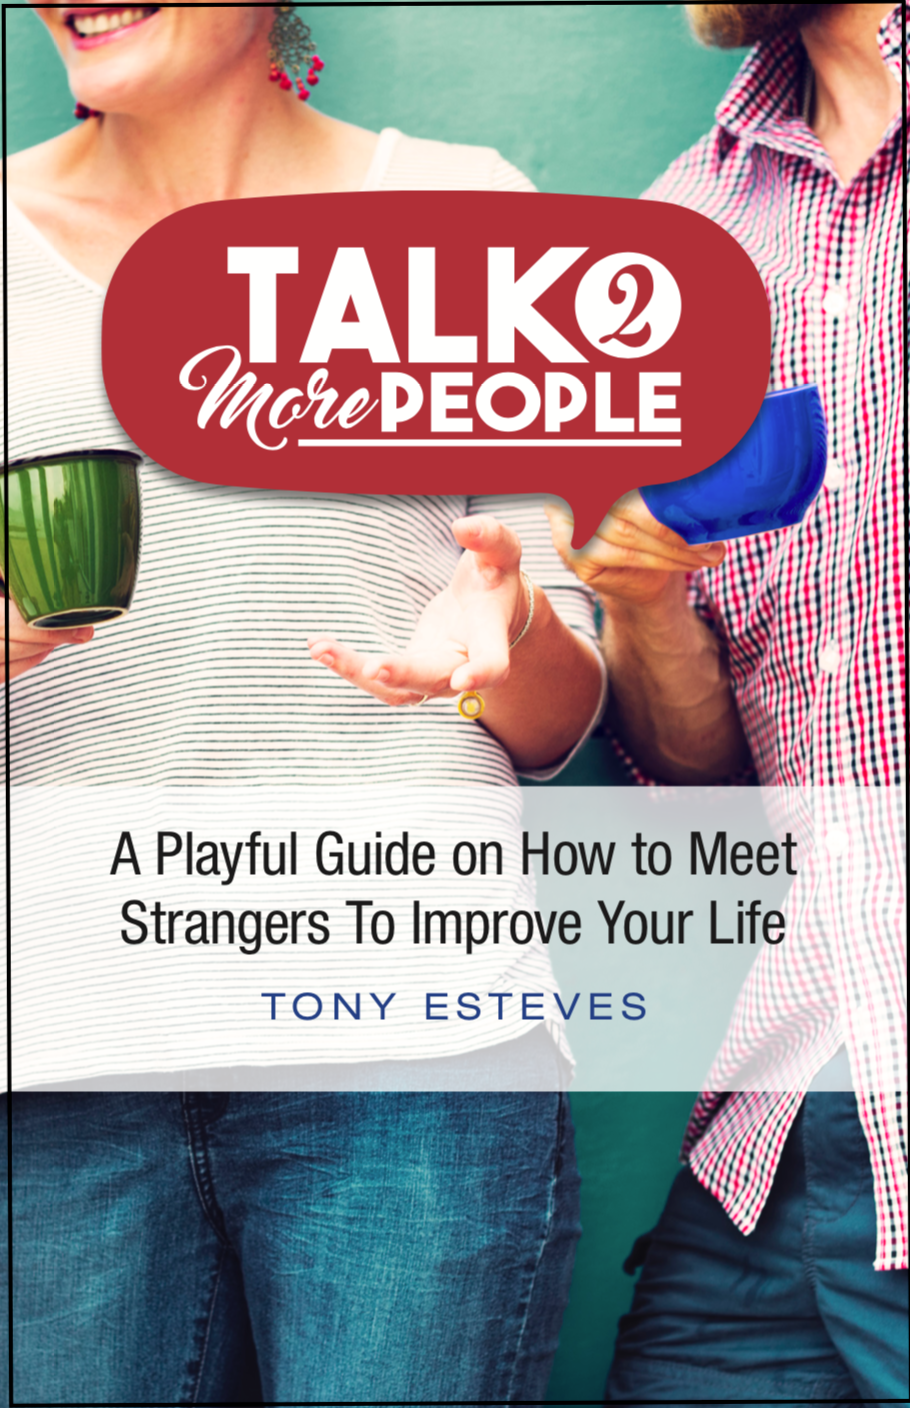 Thumbnail of: 5 Paperback Talk2MorePeople Books